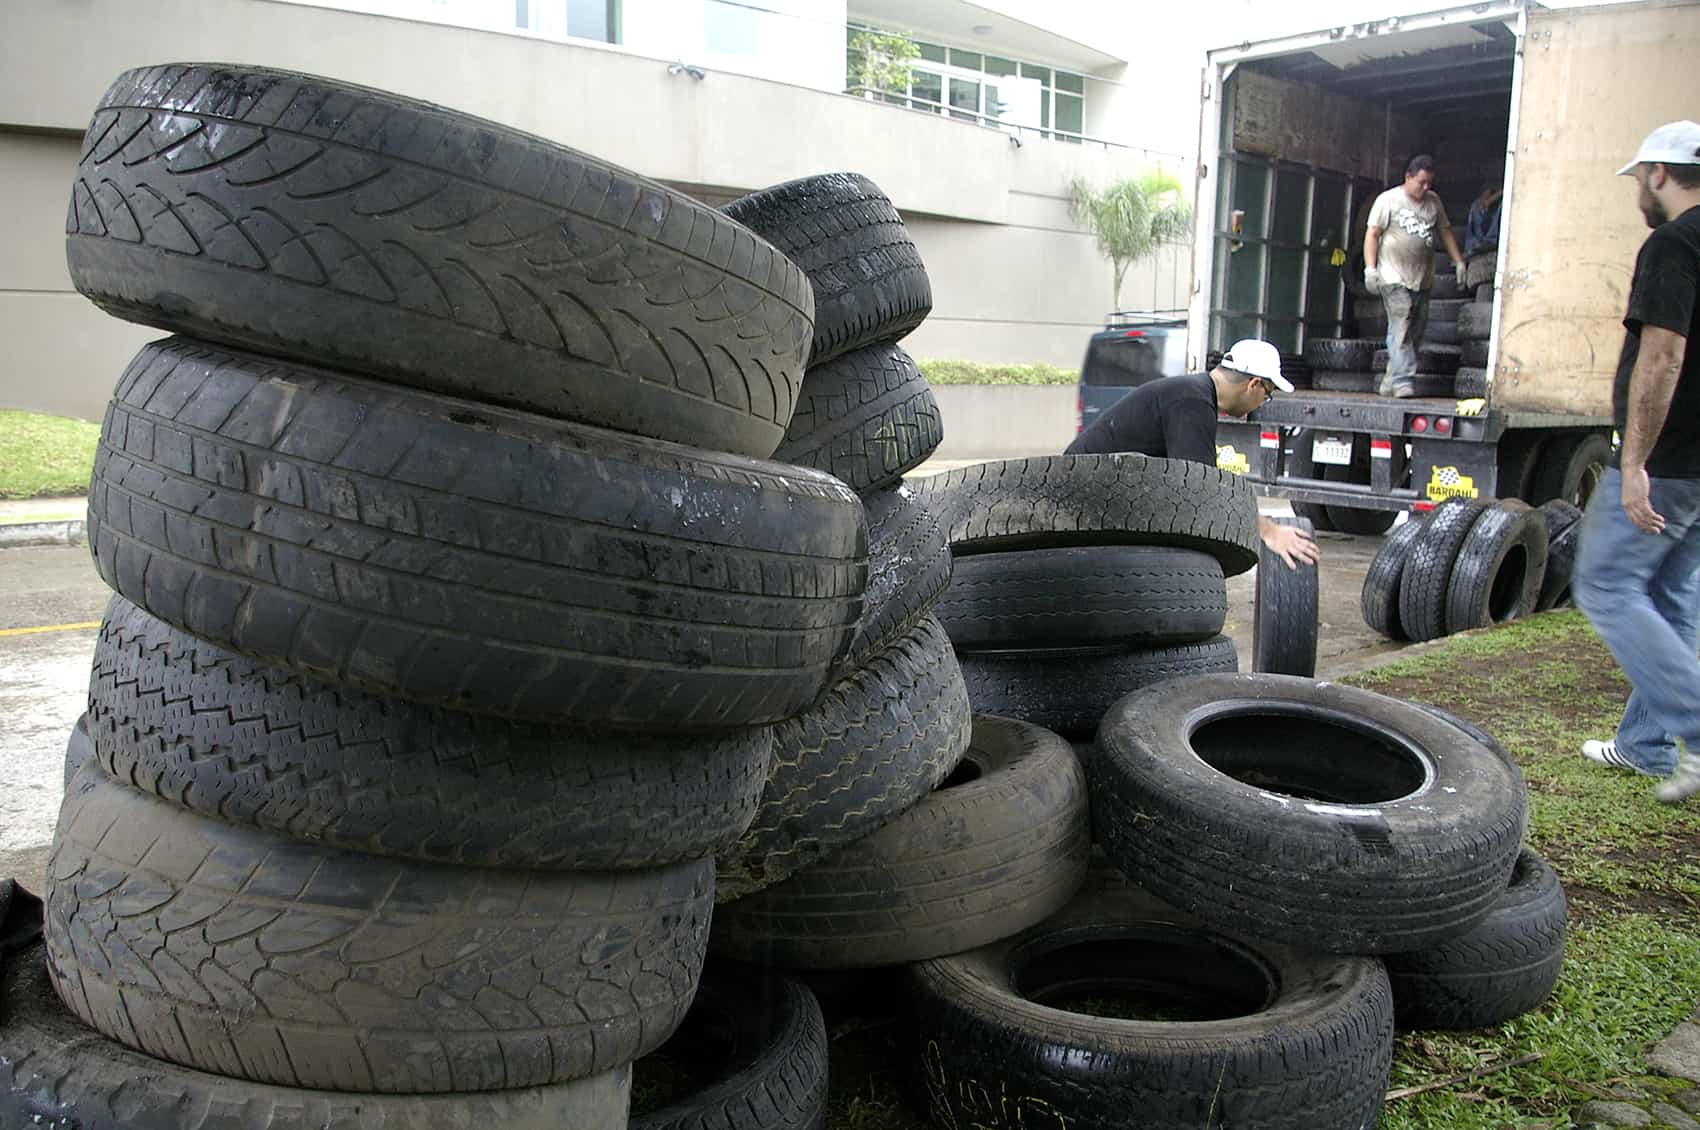 Old tires collected for recycling.